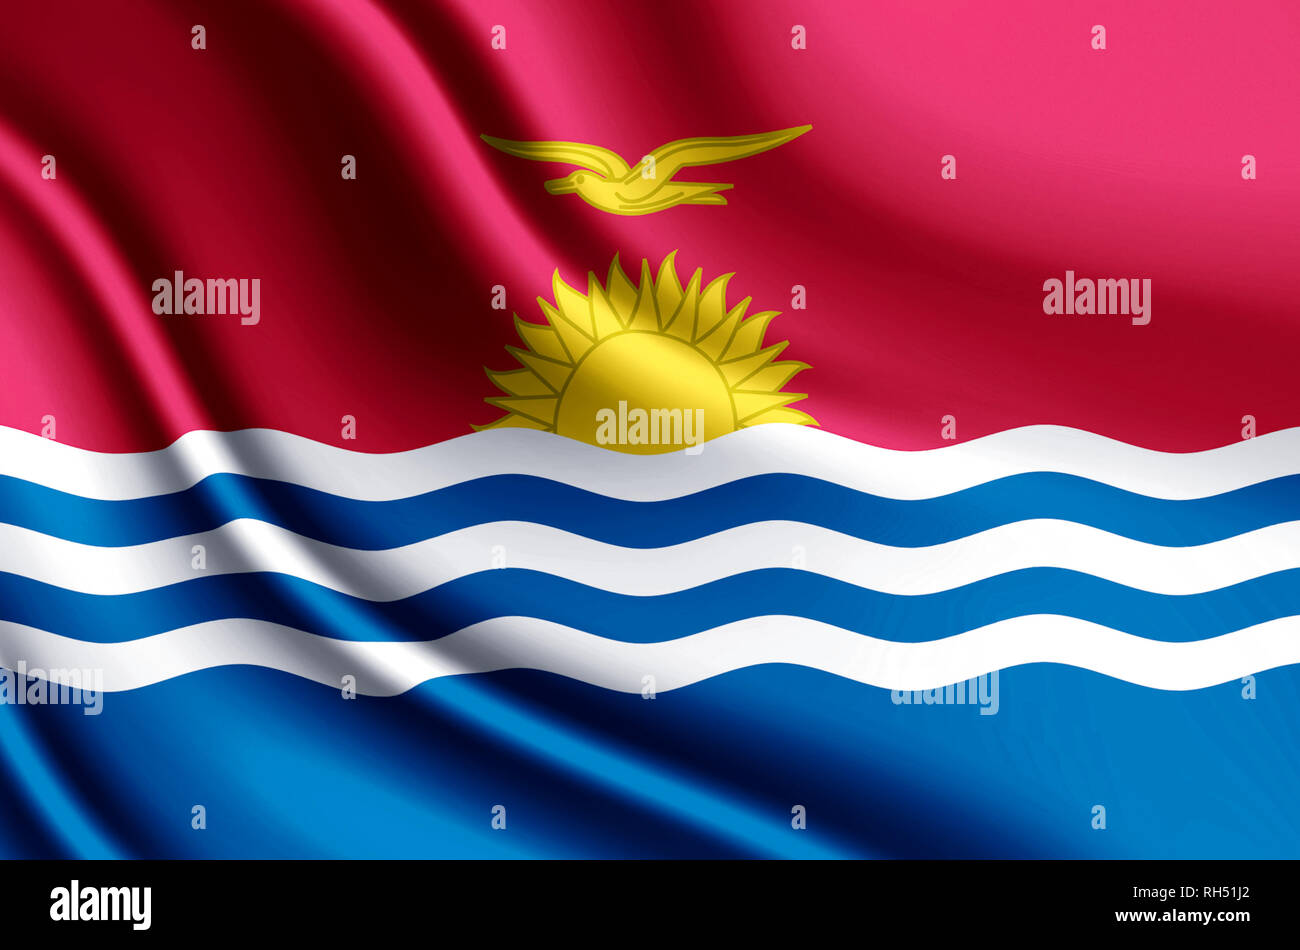 Kiribati modern and realistic closeup 3D flag illustration. Perfect for background or texture purposes. - Stock Image